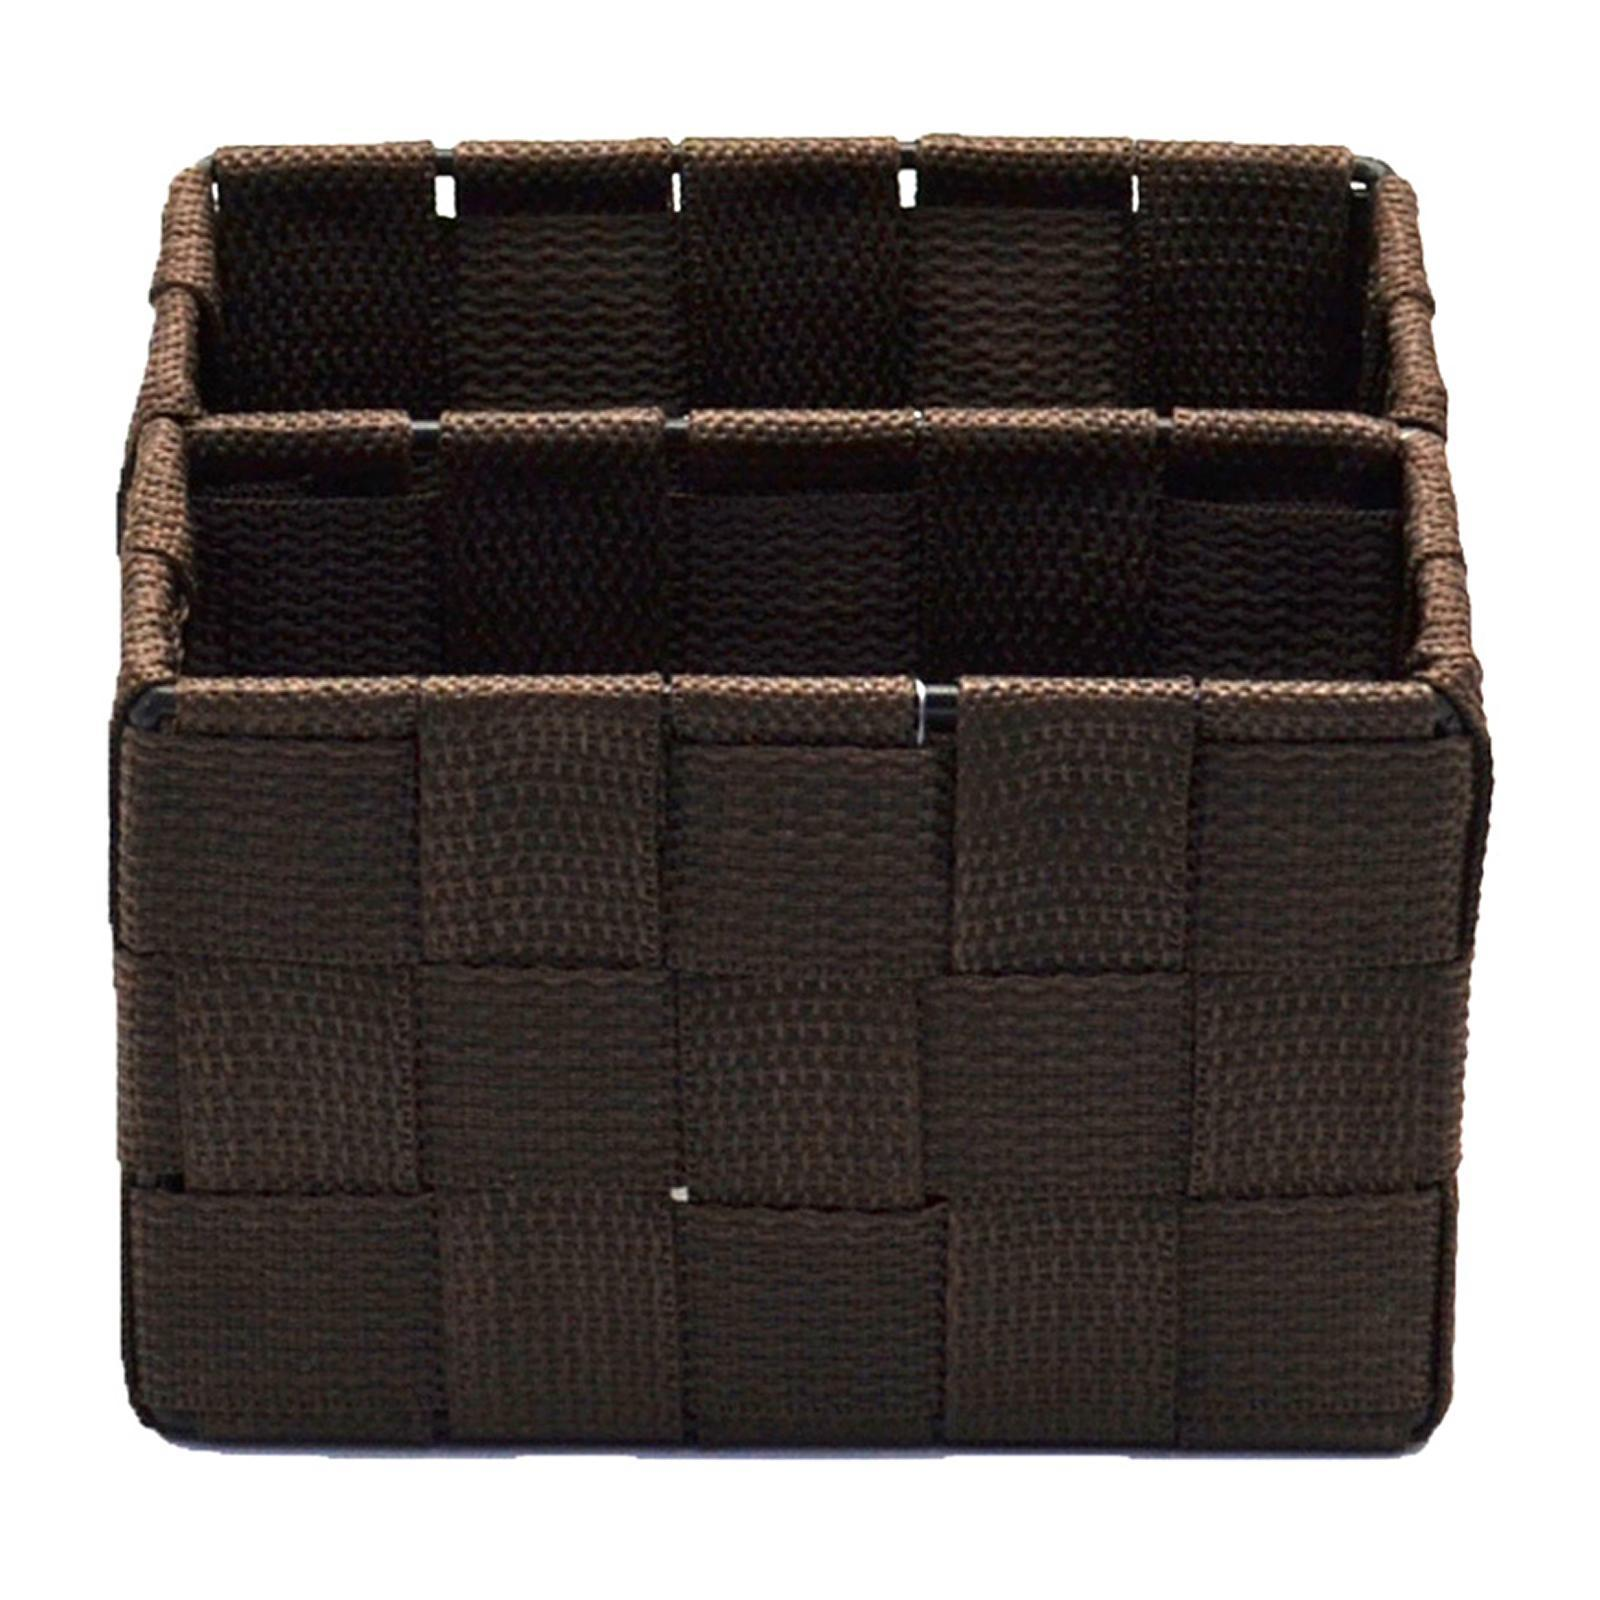 Suzanne Sobelle -Remote Control Holder(S)-14.5x10x8.5-11.5-Dark Brown PP Woven Home Organiser